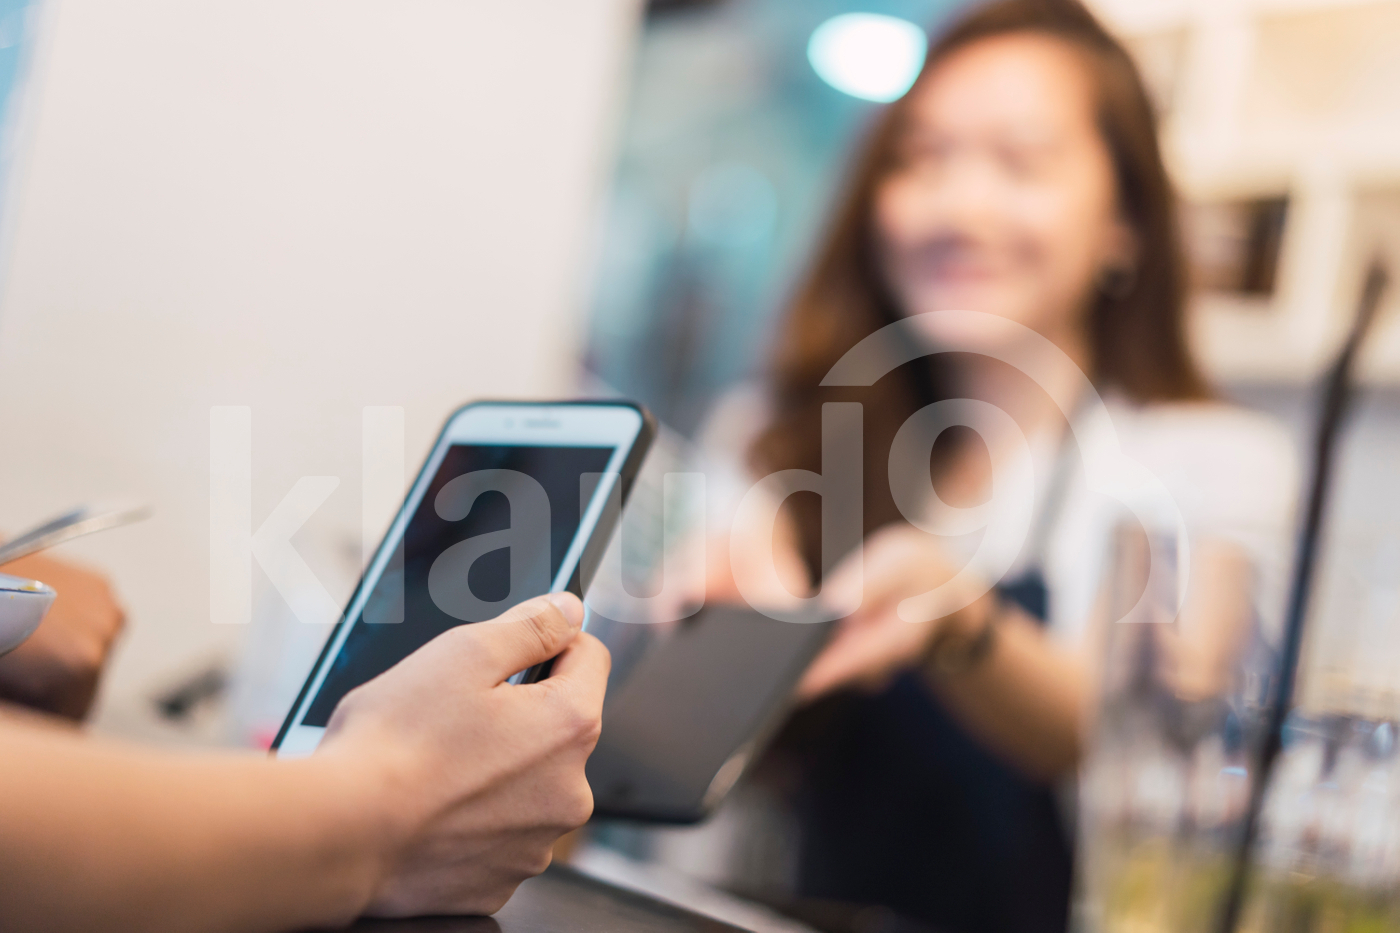 Cropped shot of woman making e-wallet payment